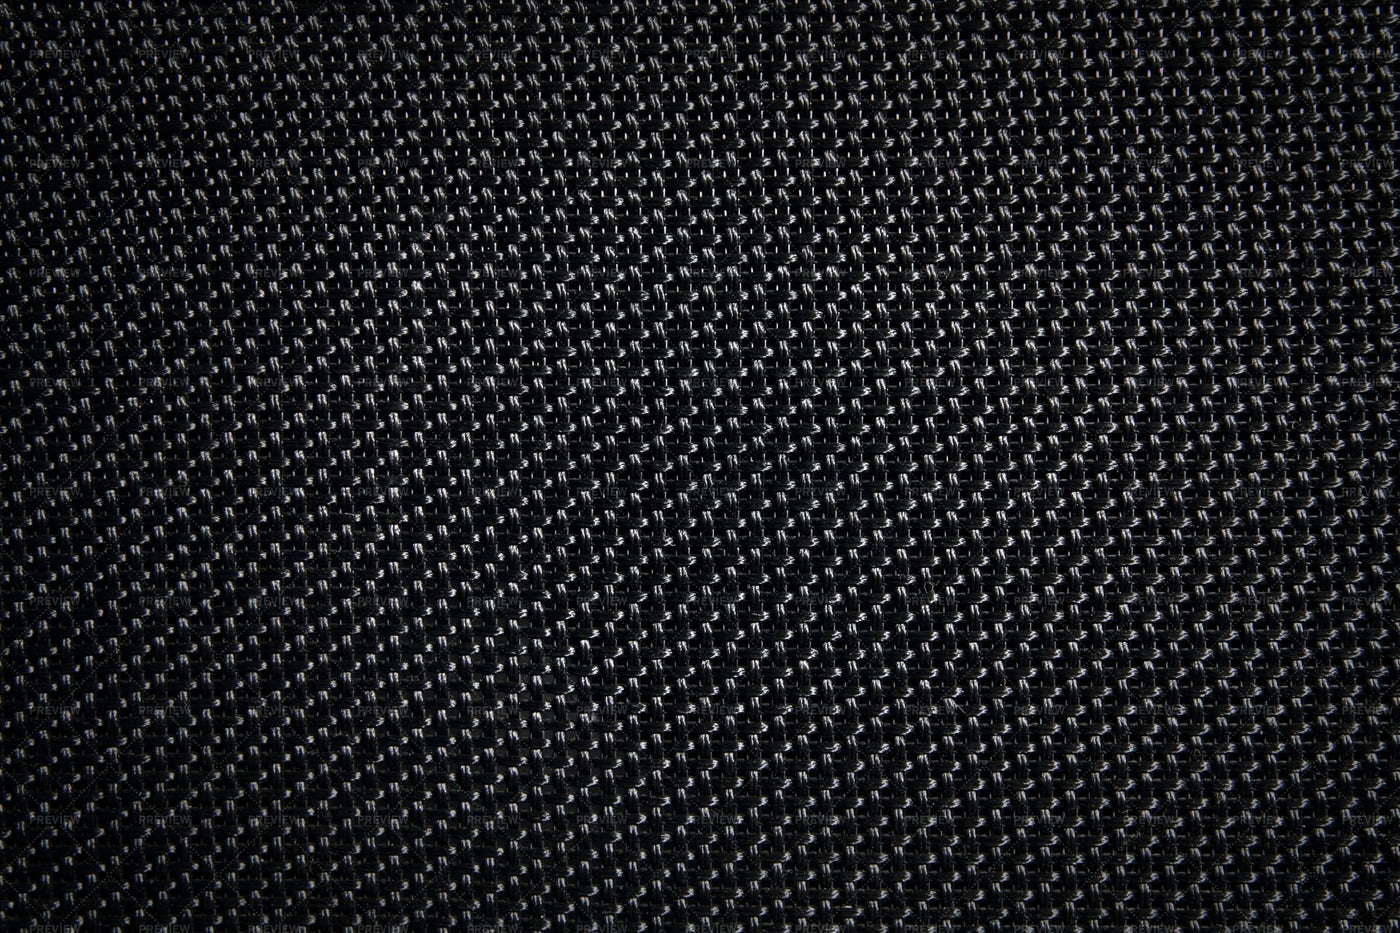 Black Metal Texture Stock Photos Motion Array Textures.com is a website that offers digital pictures of all sorts of materials. black metal texture stock photos